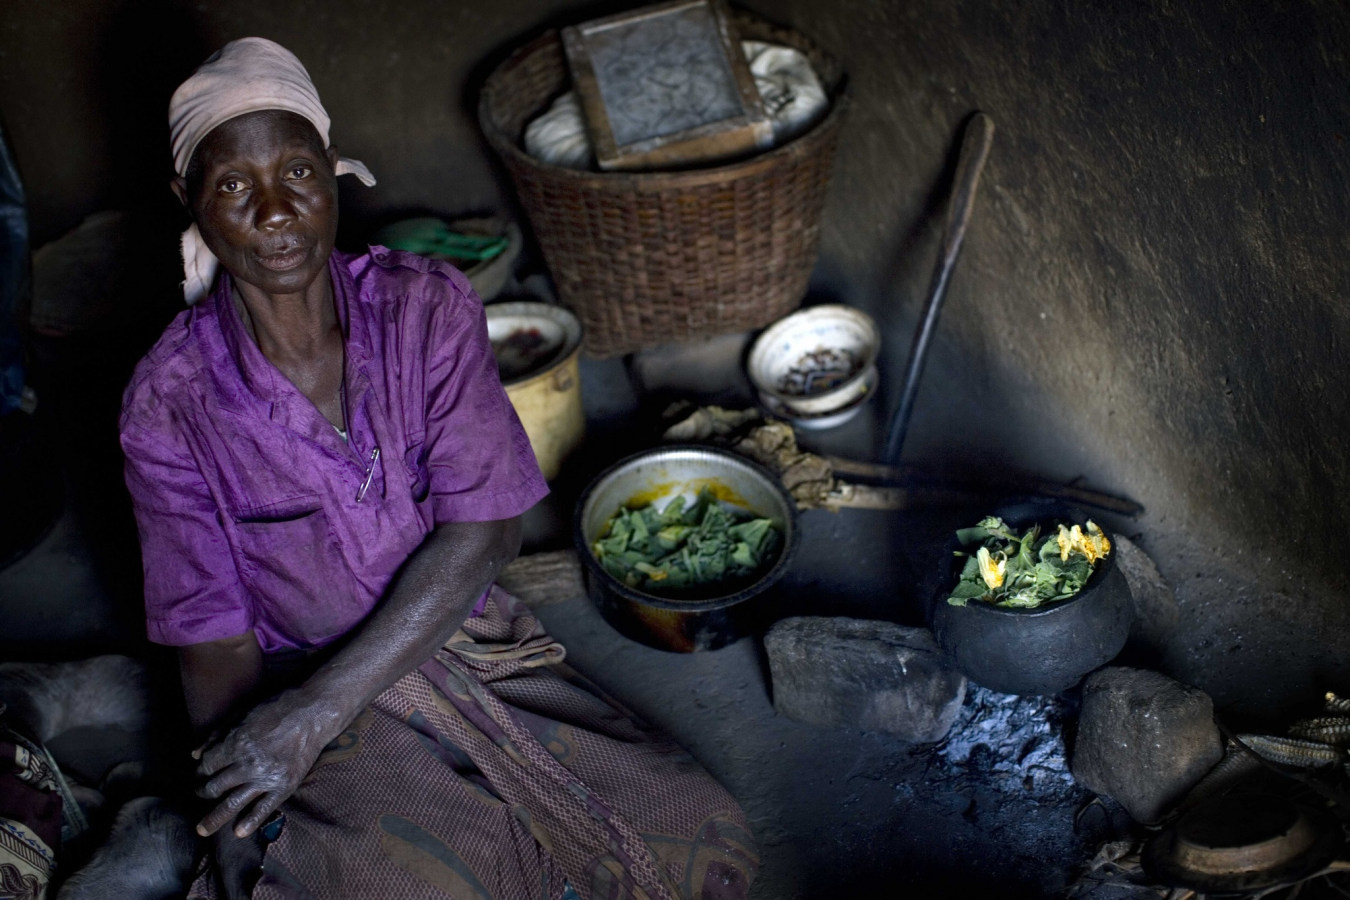 DLP image of a woman in Malawi in her house